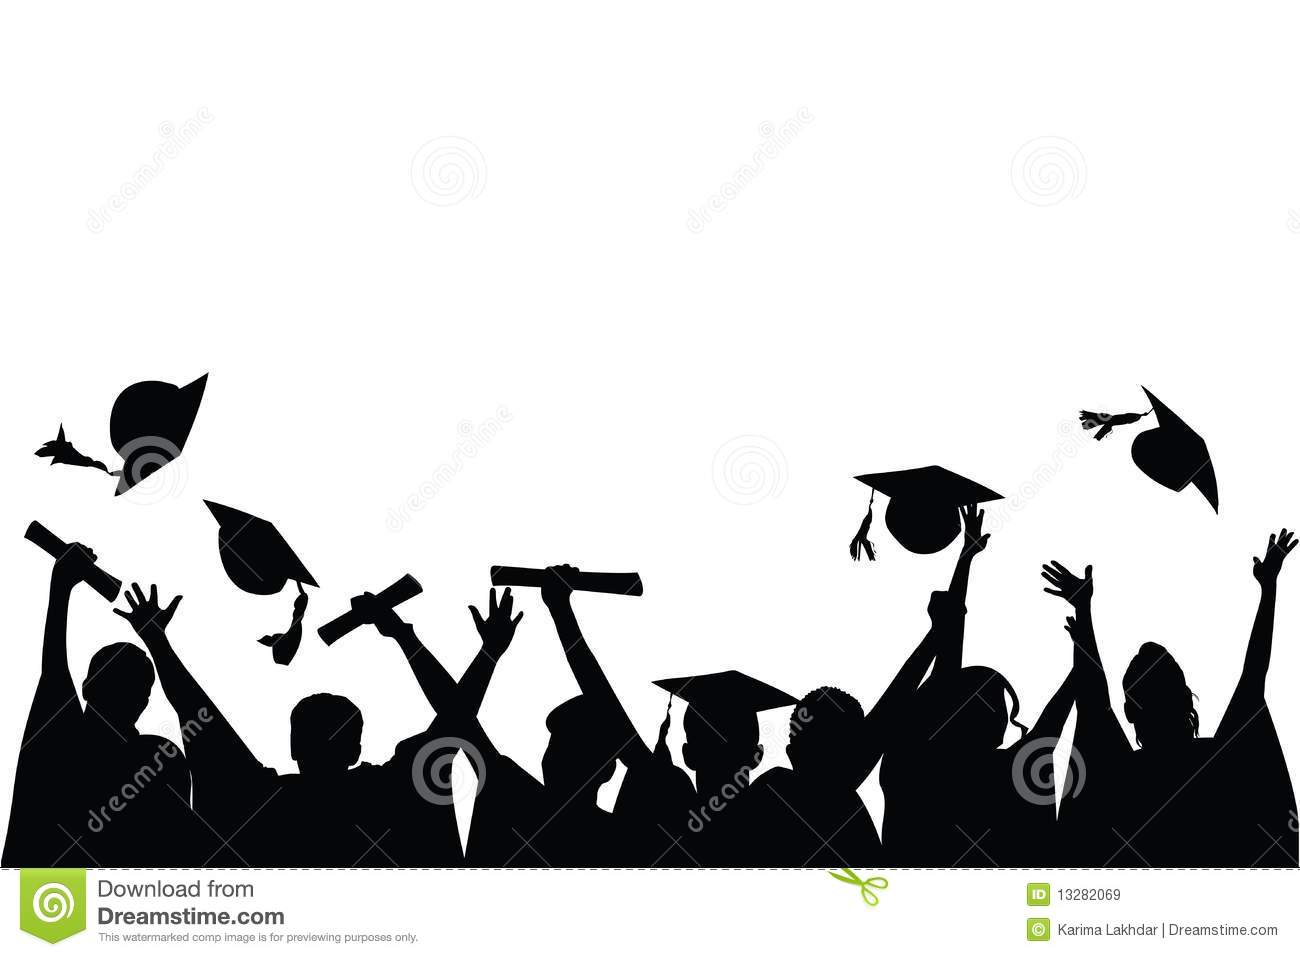 Graduation Stock Photos And Images  123RF